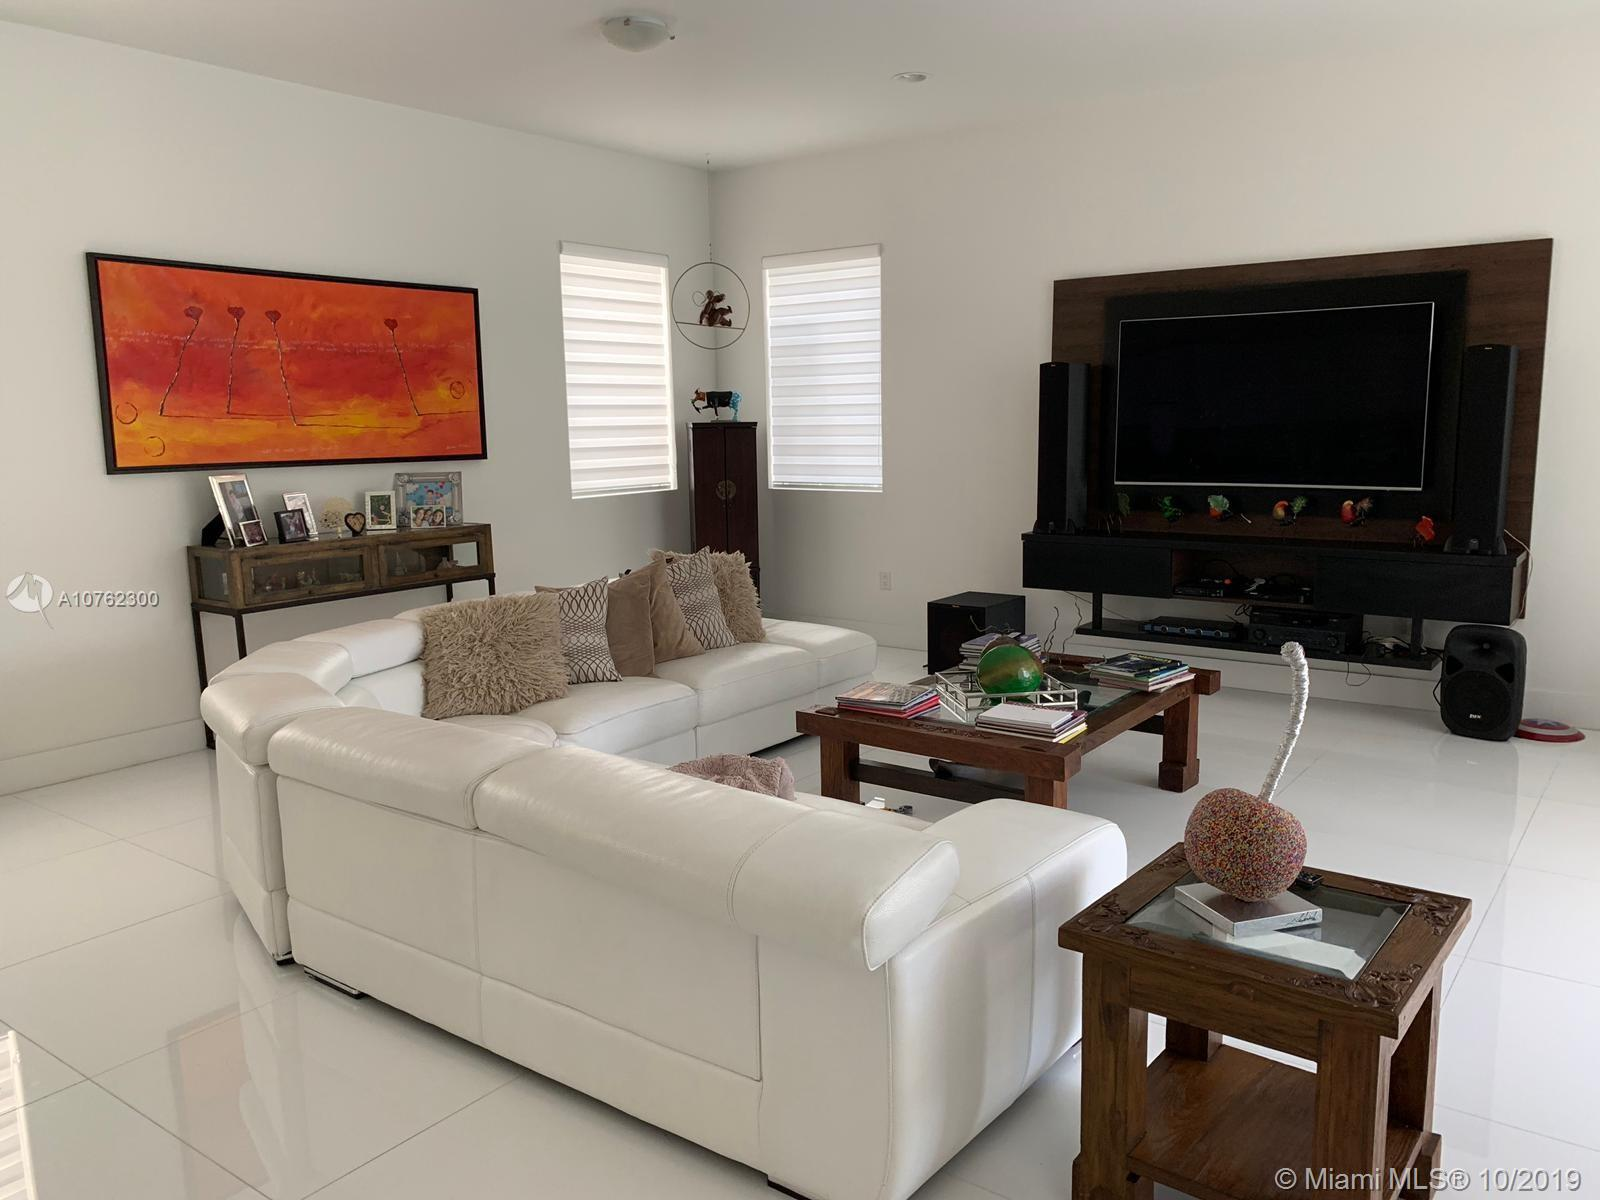 One of Doral 5 Bedroom Homes for Sale at 9975 NW 75th St